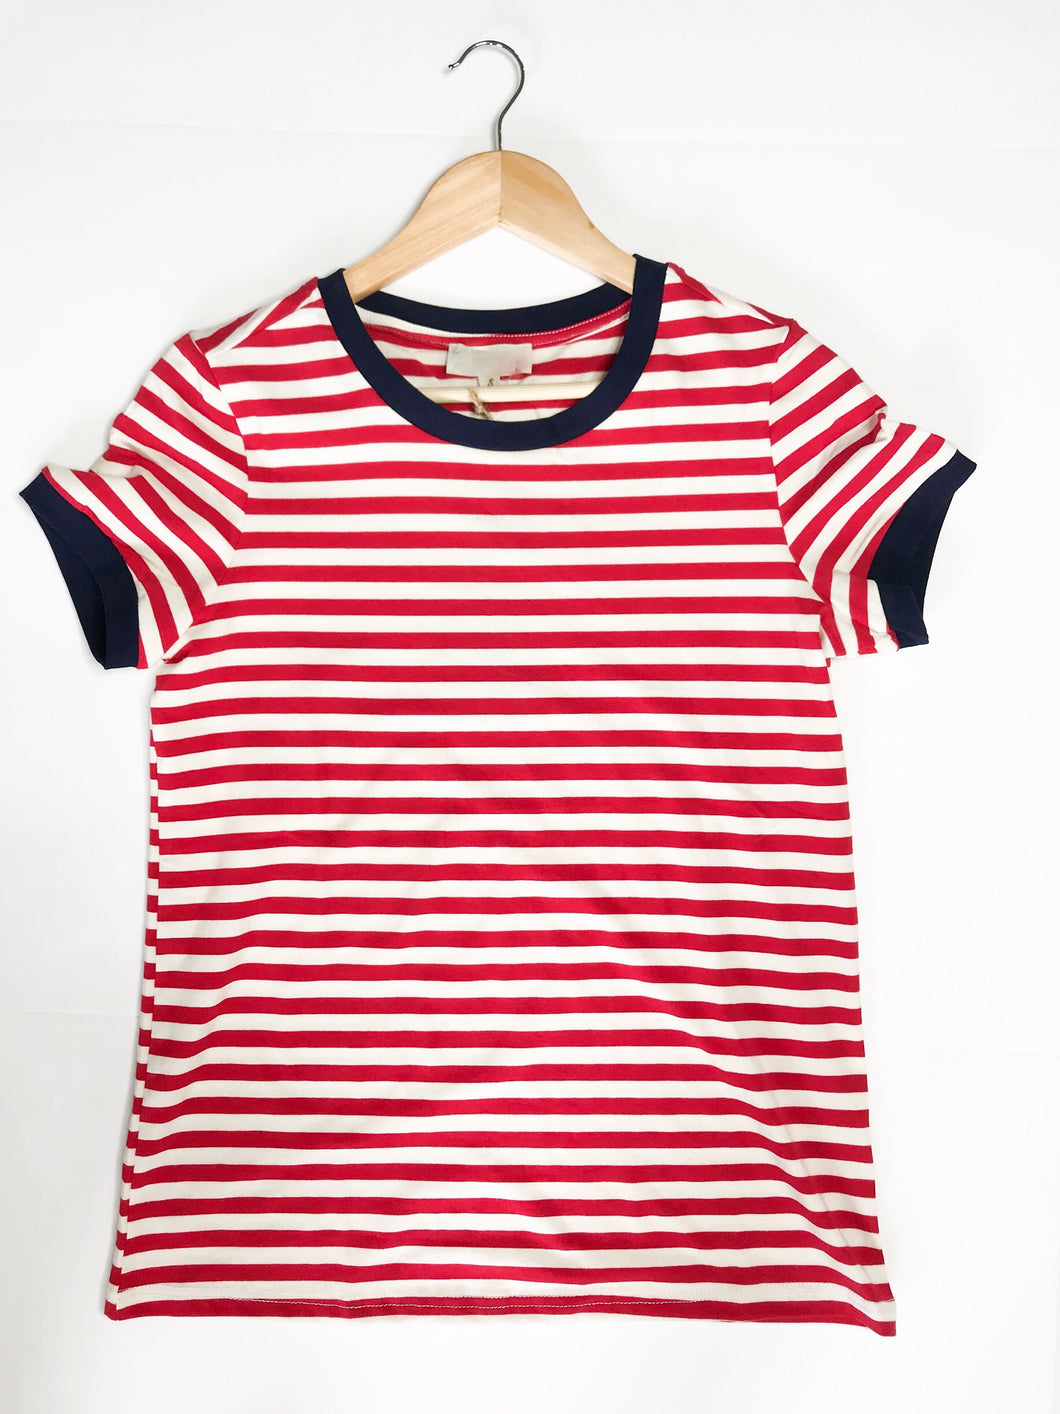 American red stripes tee